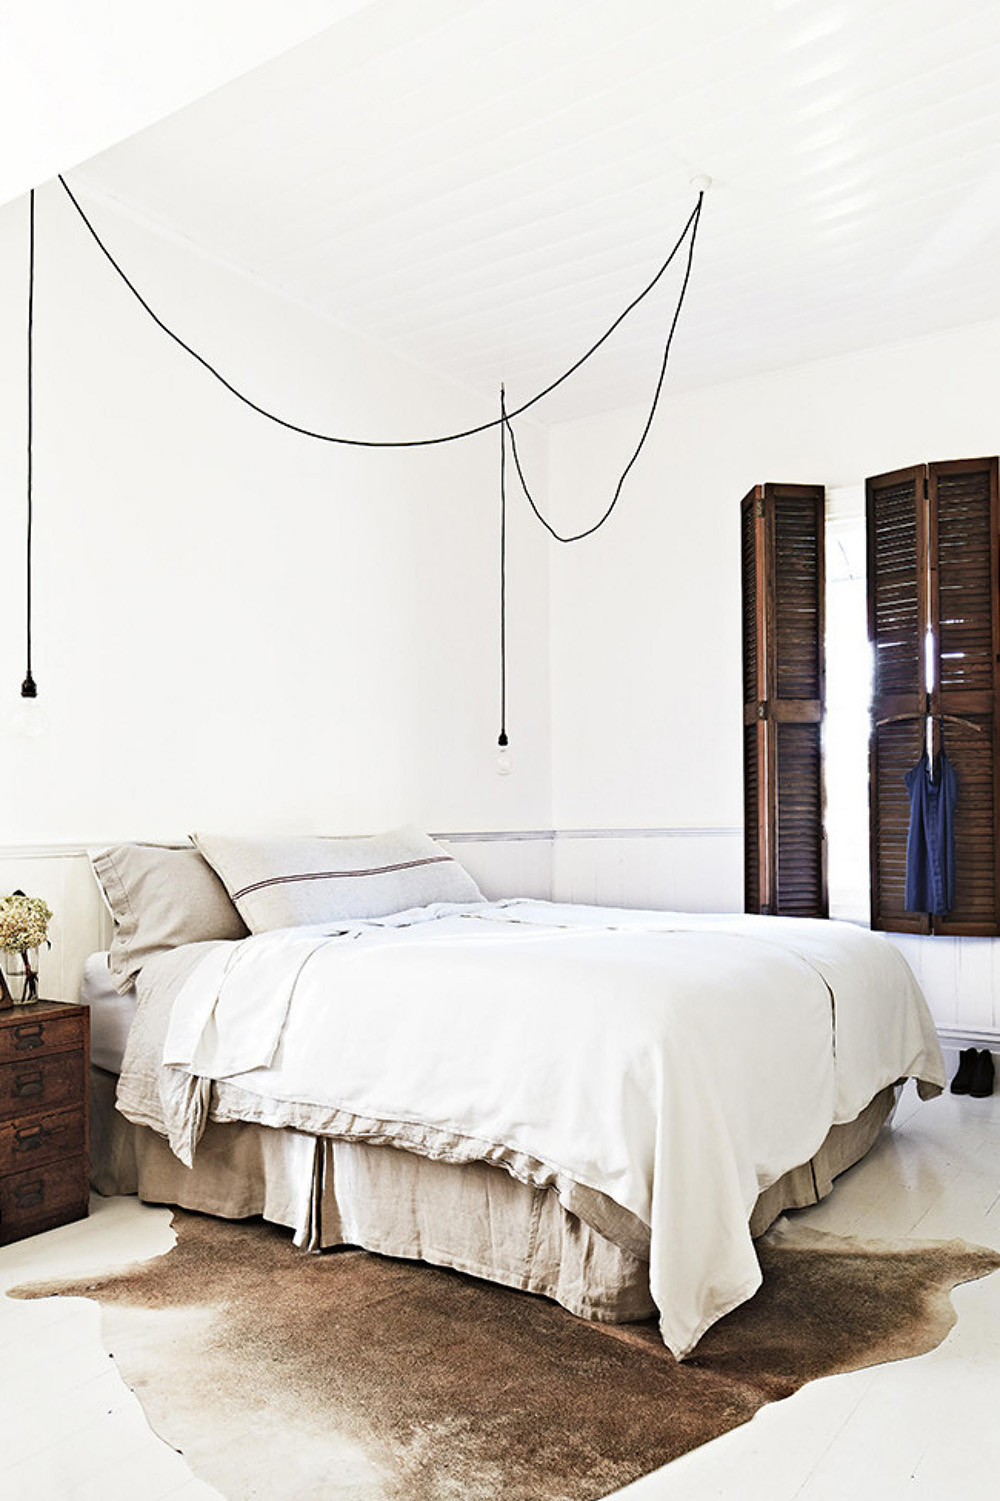 white-rustic-bedroom-linen-industrial-wood-doors-exposed-bulbs-20150401101916~q75,dx1920y-u1r1g0